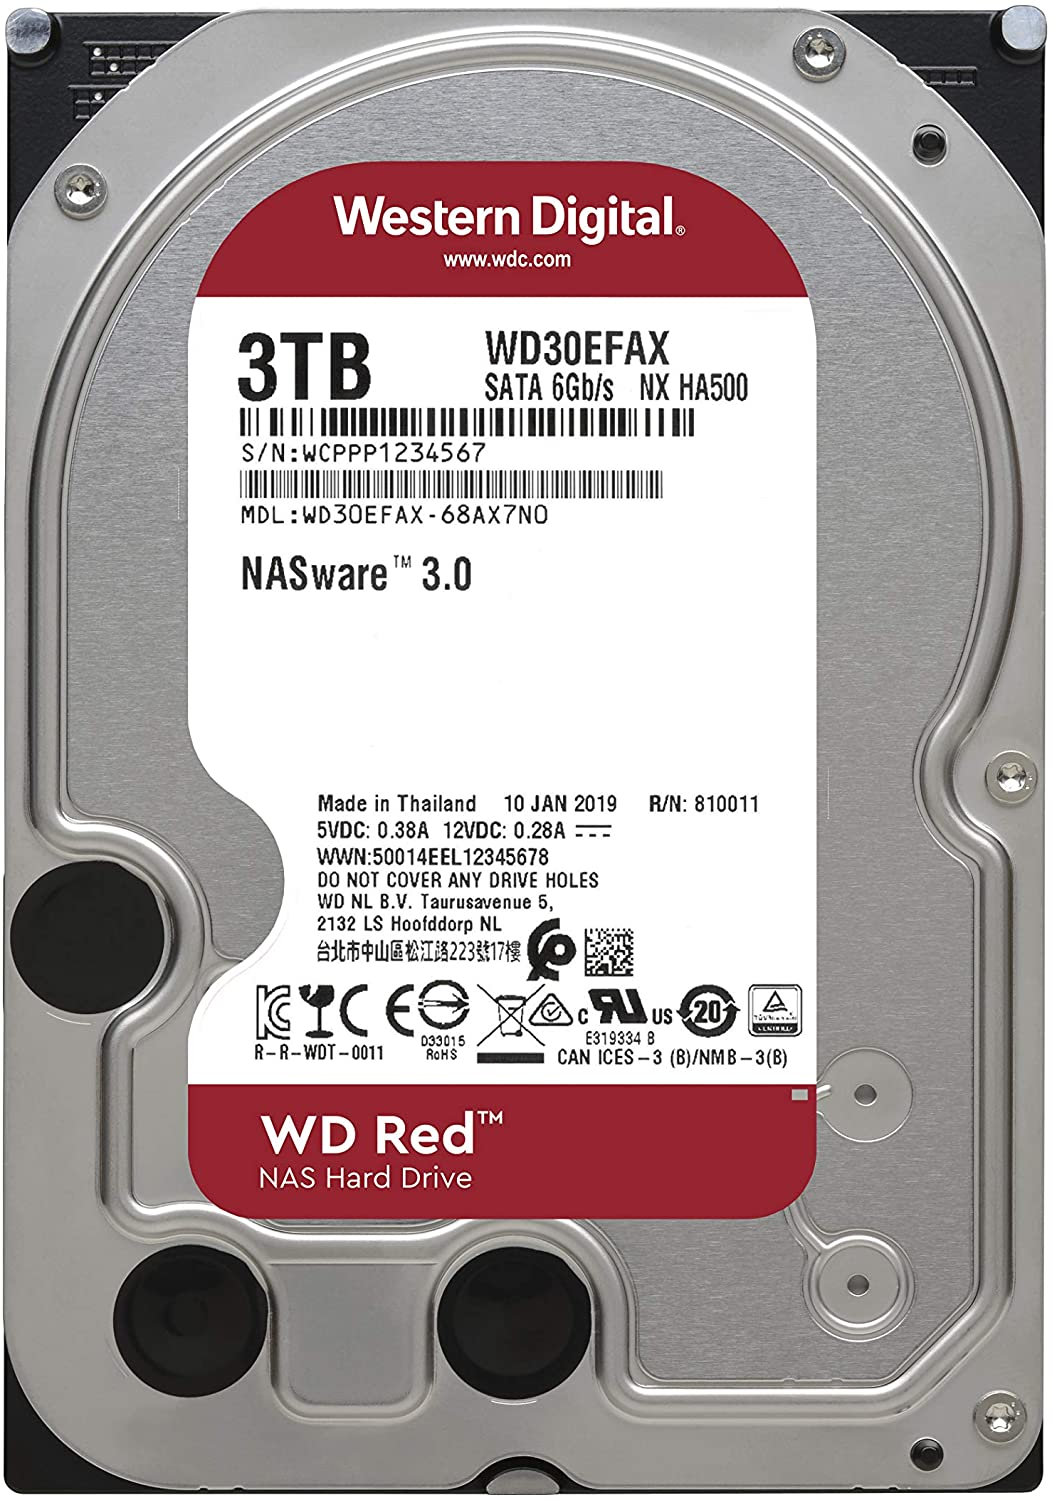 HD W.DIGITAL WD30EFAX 3TB 256MB 3.5 SATA